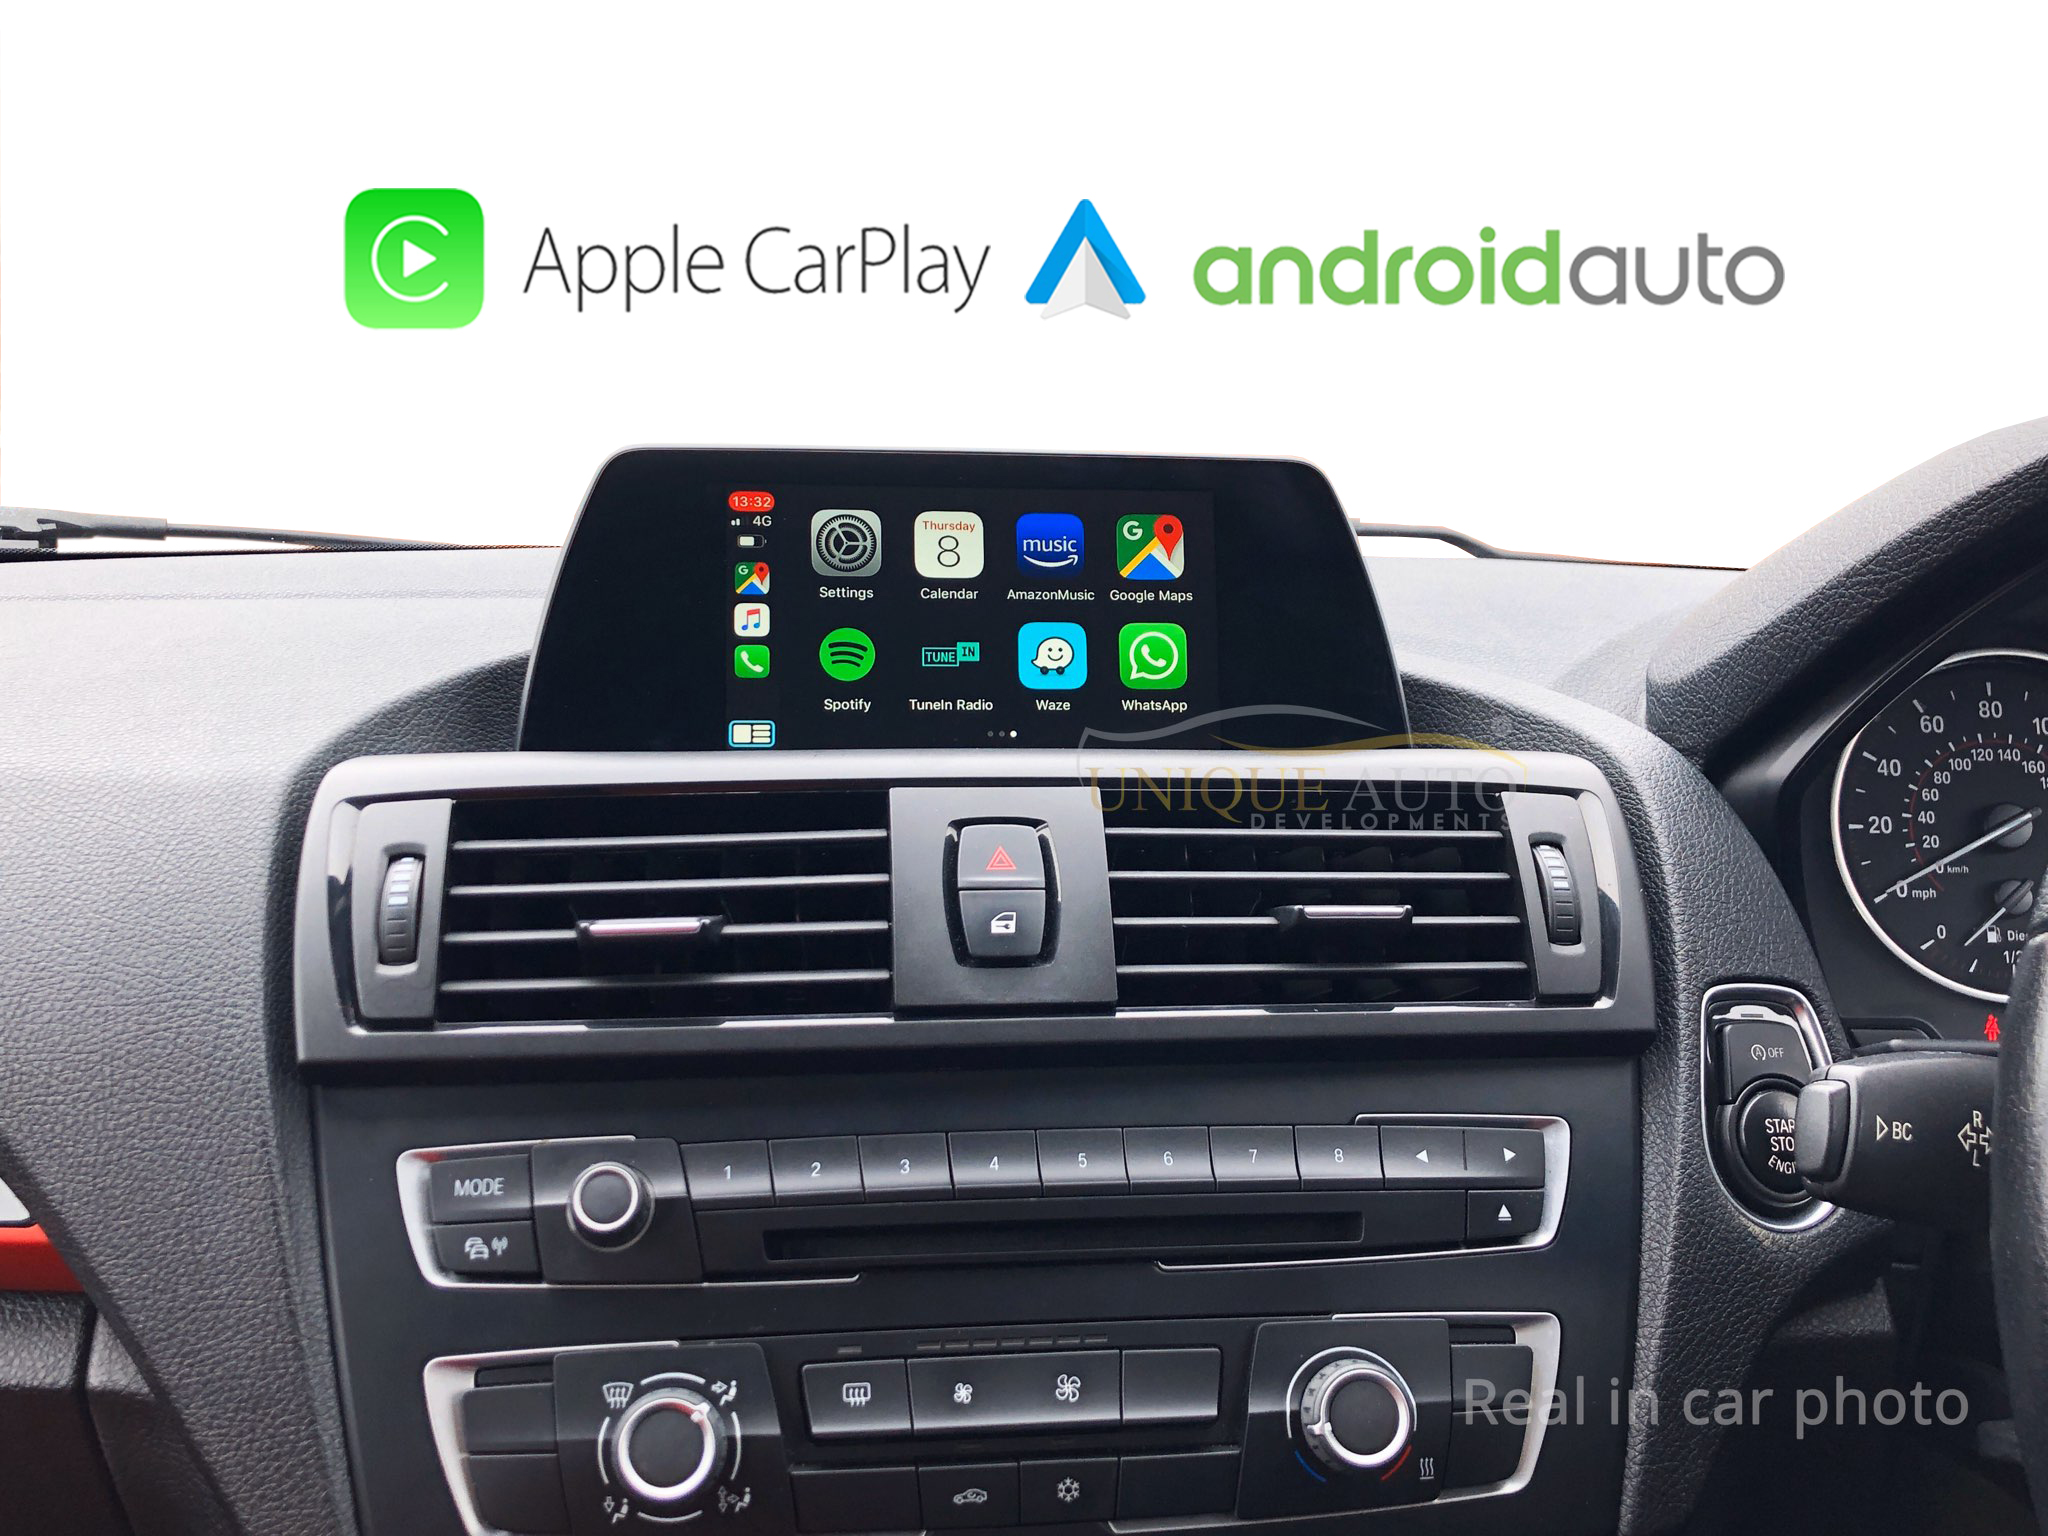 Wireless Apple Carplay Android Auto Bmw Nbt F10 F20 F30 1 2 3 4 5 Series 2011 2016 With 6 5 Screen Navigation Camera Interface Unique Auto Developments